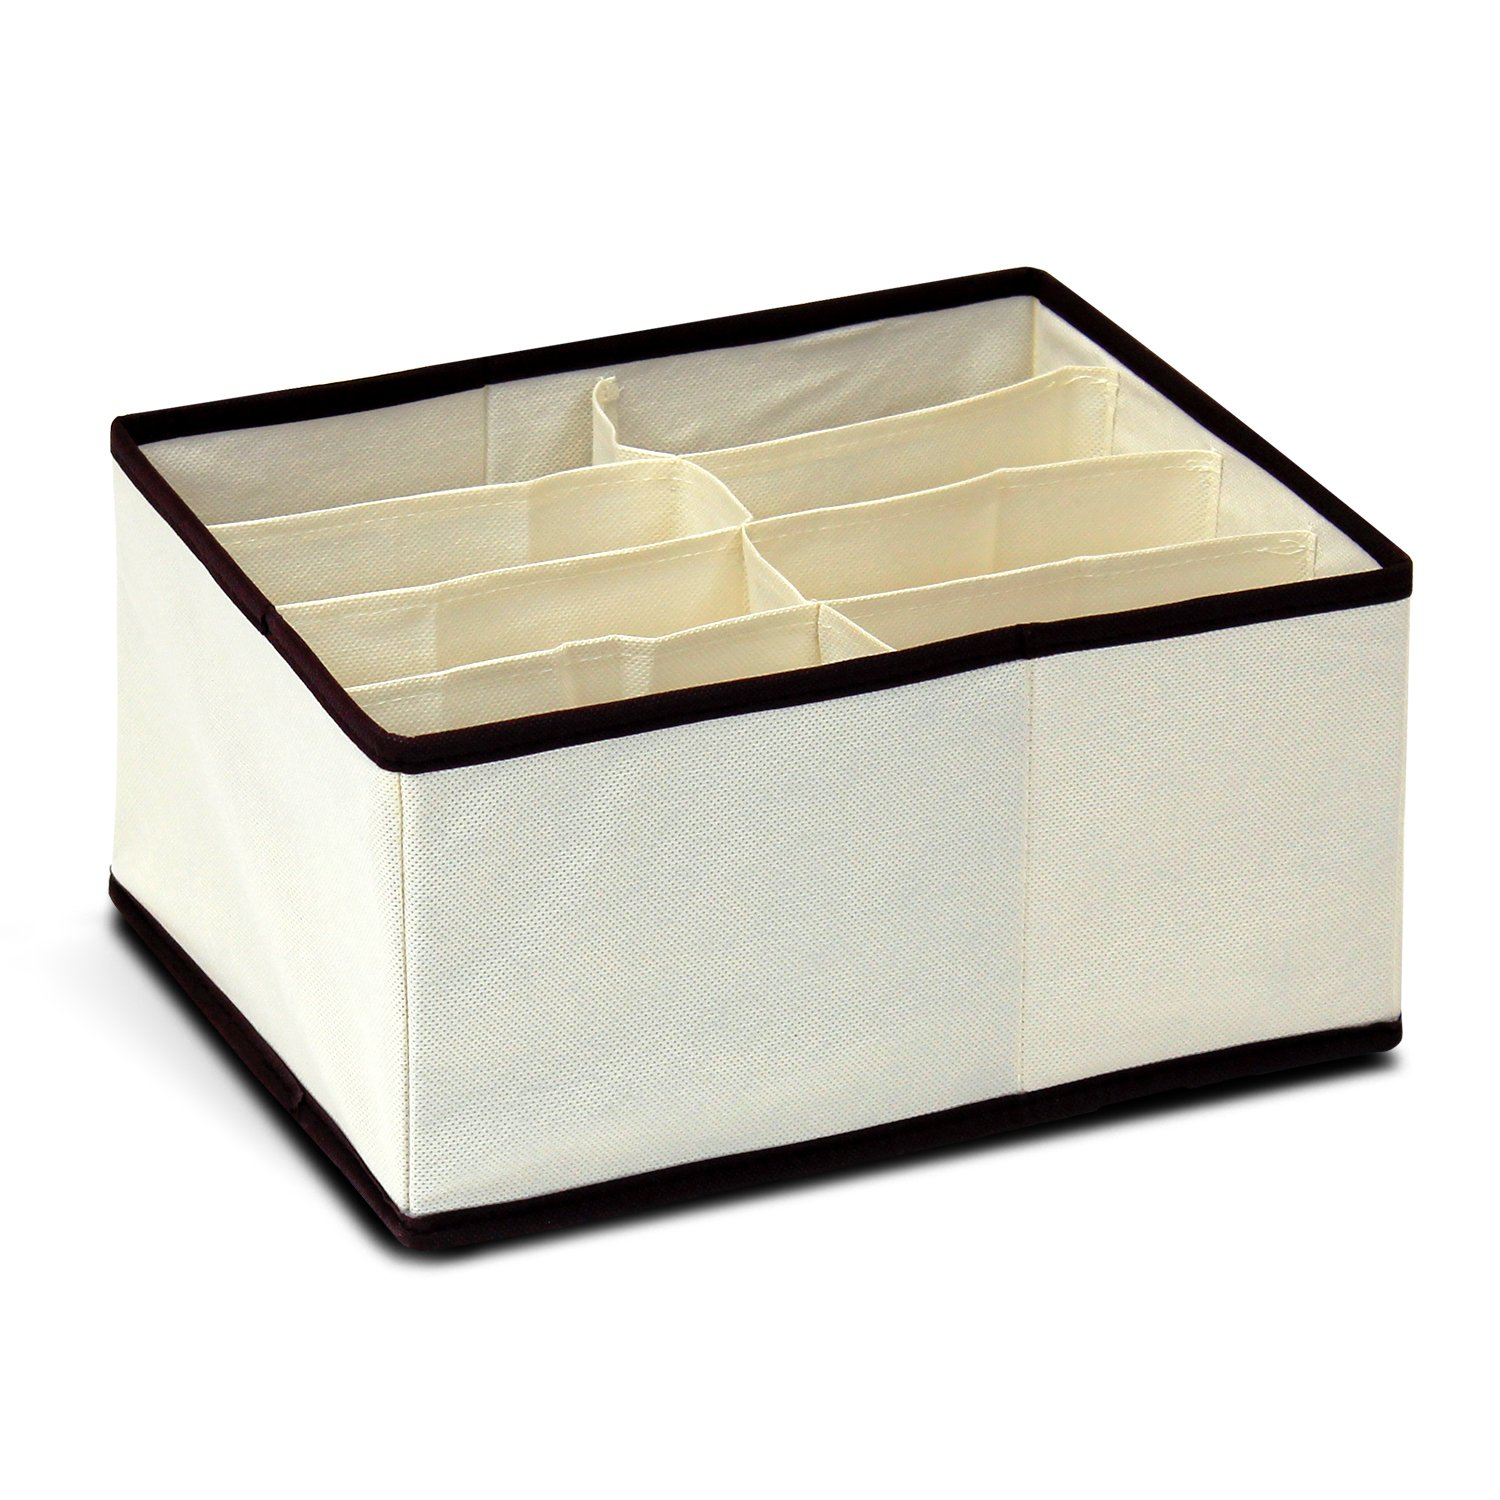 Furinno 12285IV Non-Woven Fabric Storage Organizer, 3 by 5-Inch, Ivory with Brown Trim